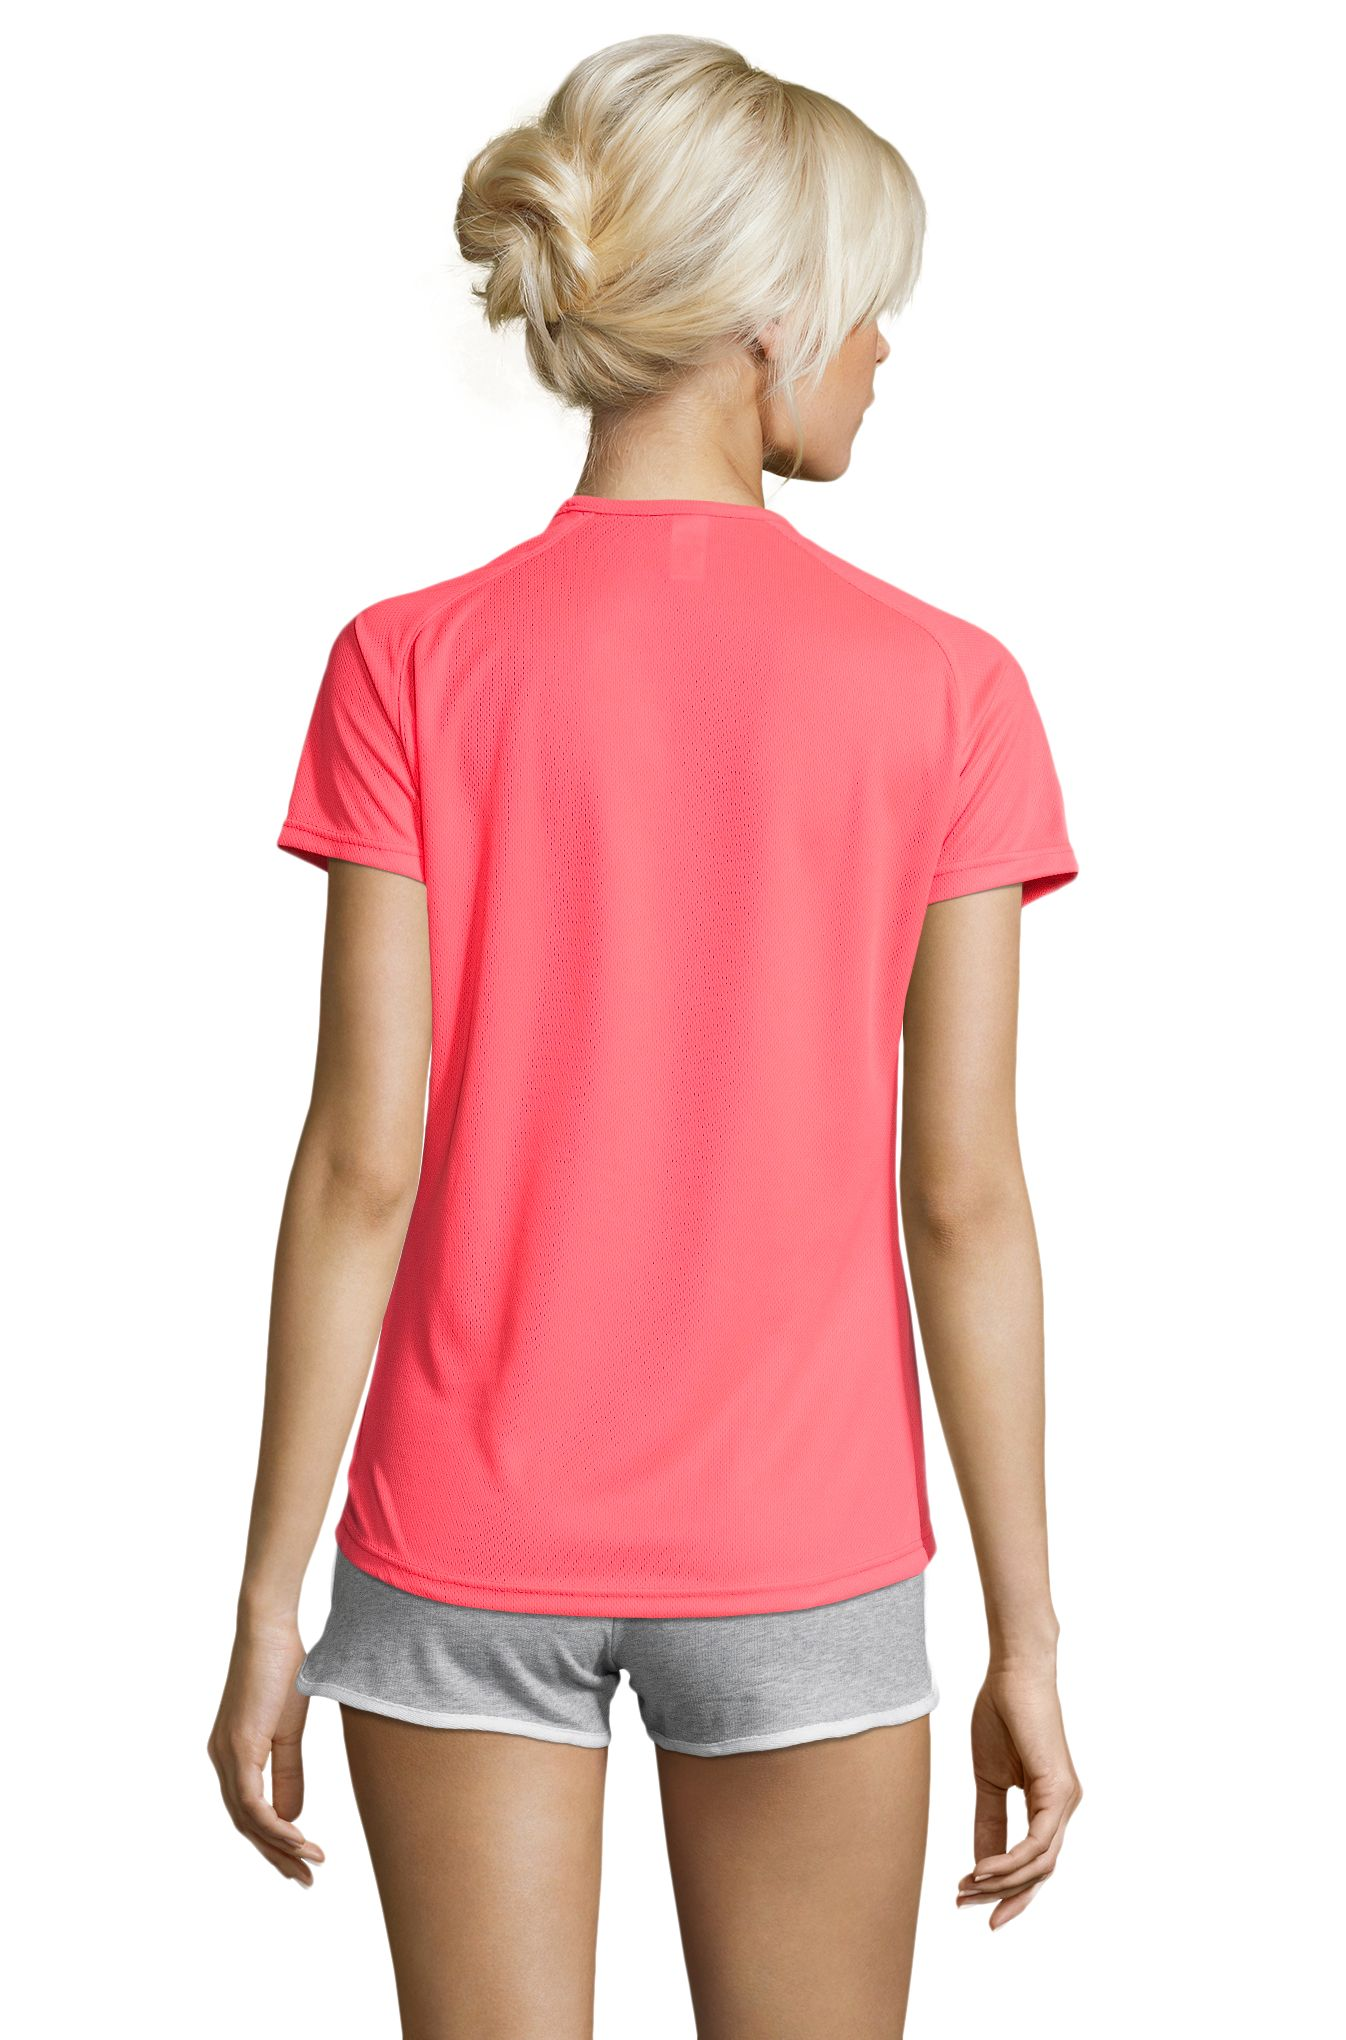 153 - Neon coral